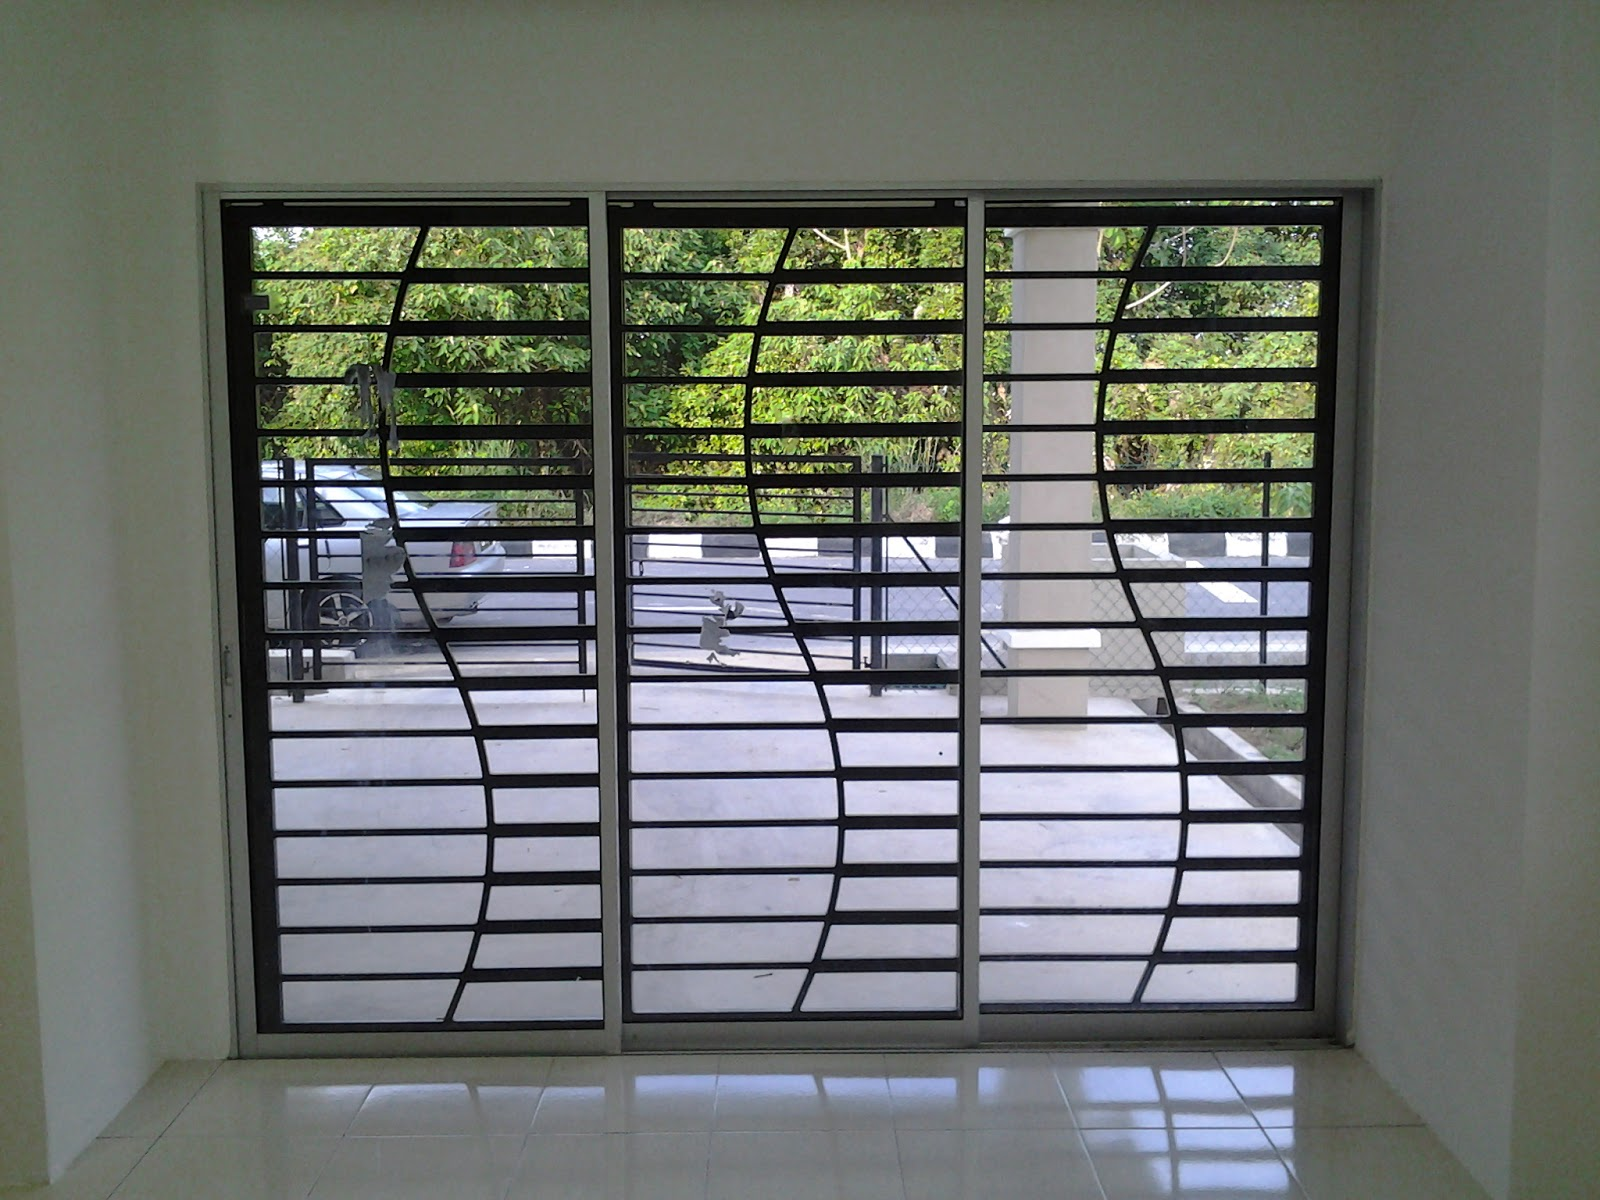 Rumahku syurgaku grill assemble - Window grills design pictures ...